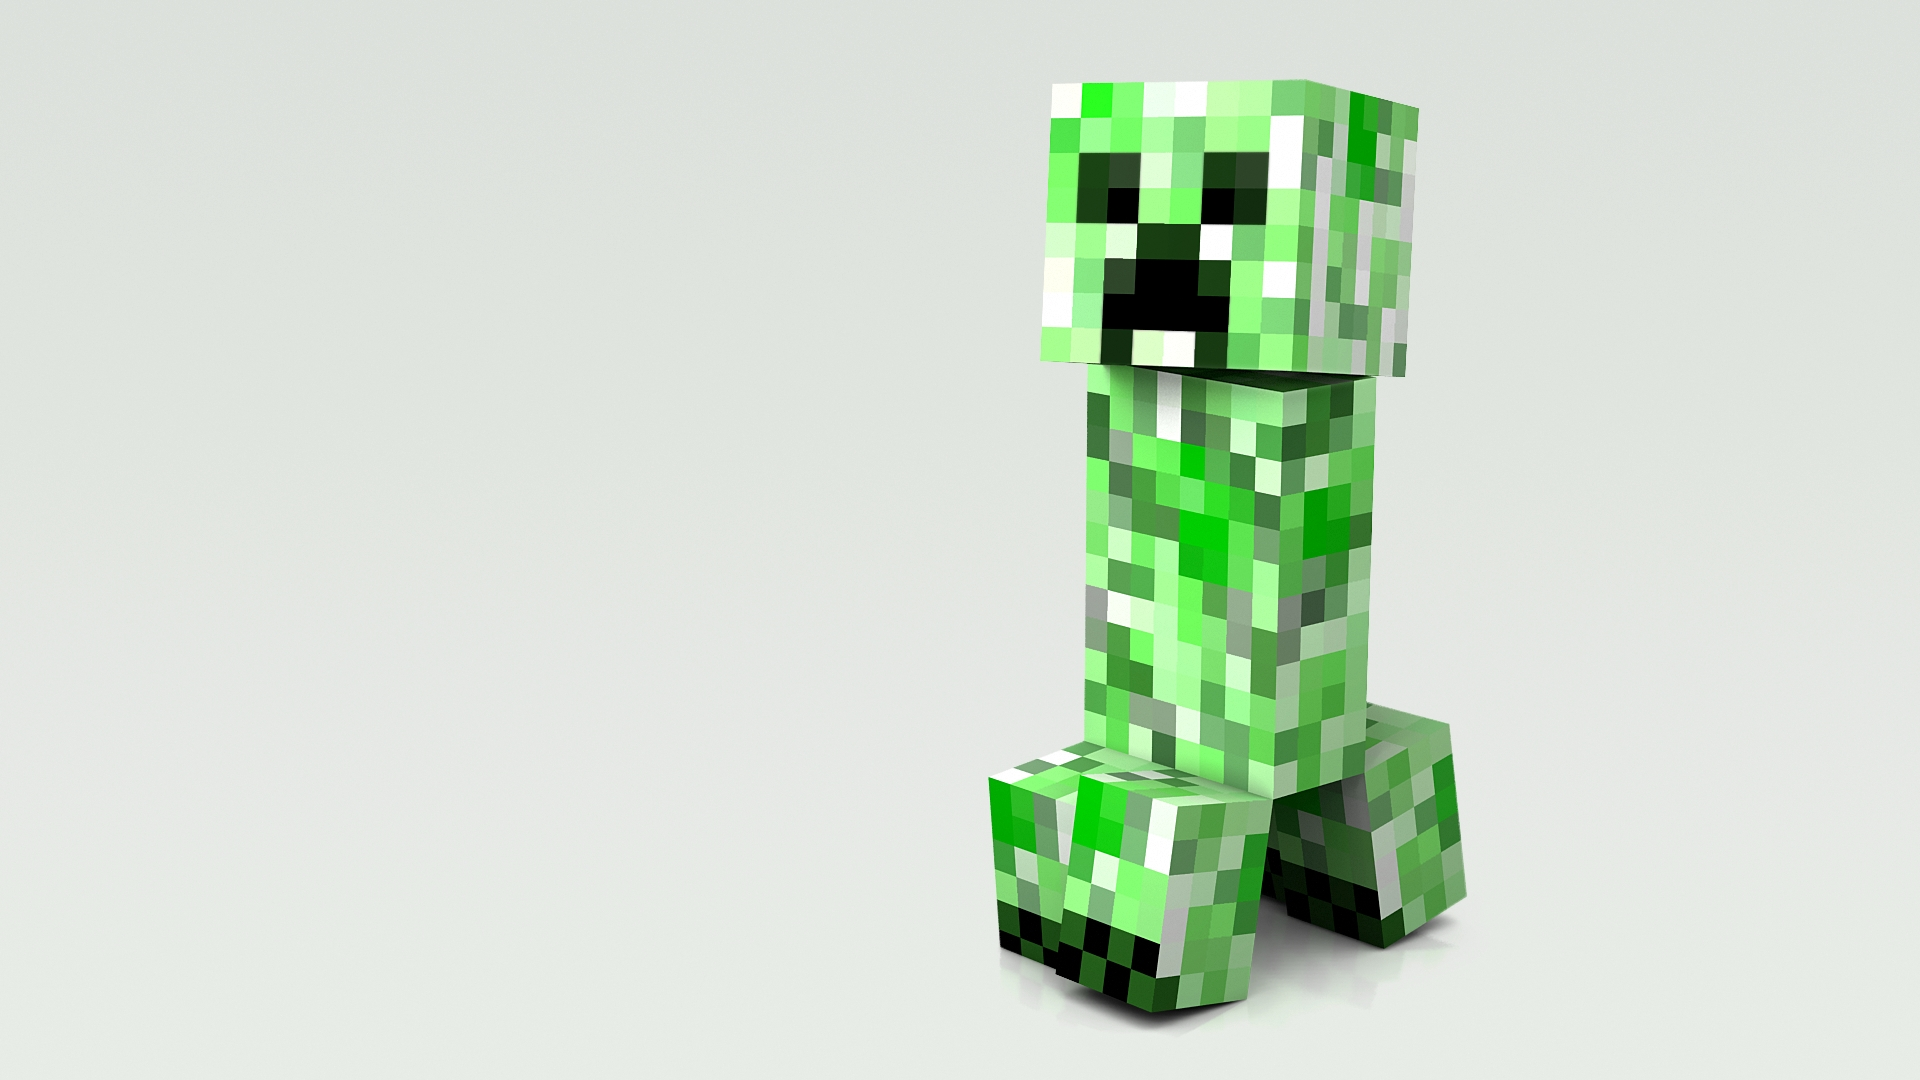 Great Wallpaper Minecraft 1080p - minecraft_cubes_people_man_21415_1920x1080  Pic_432522.jpg